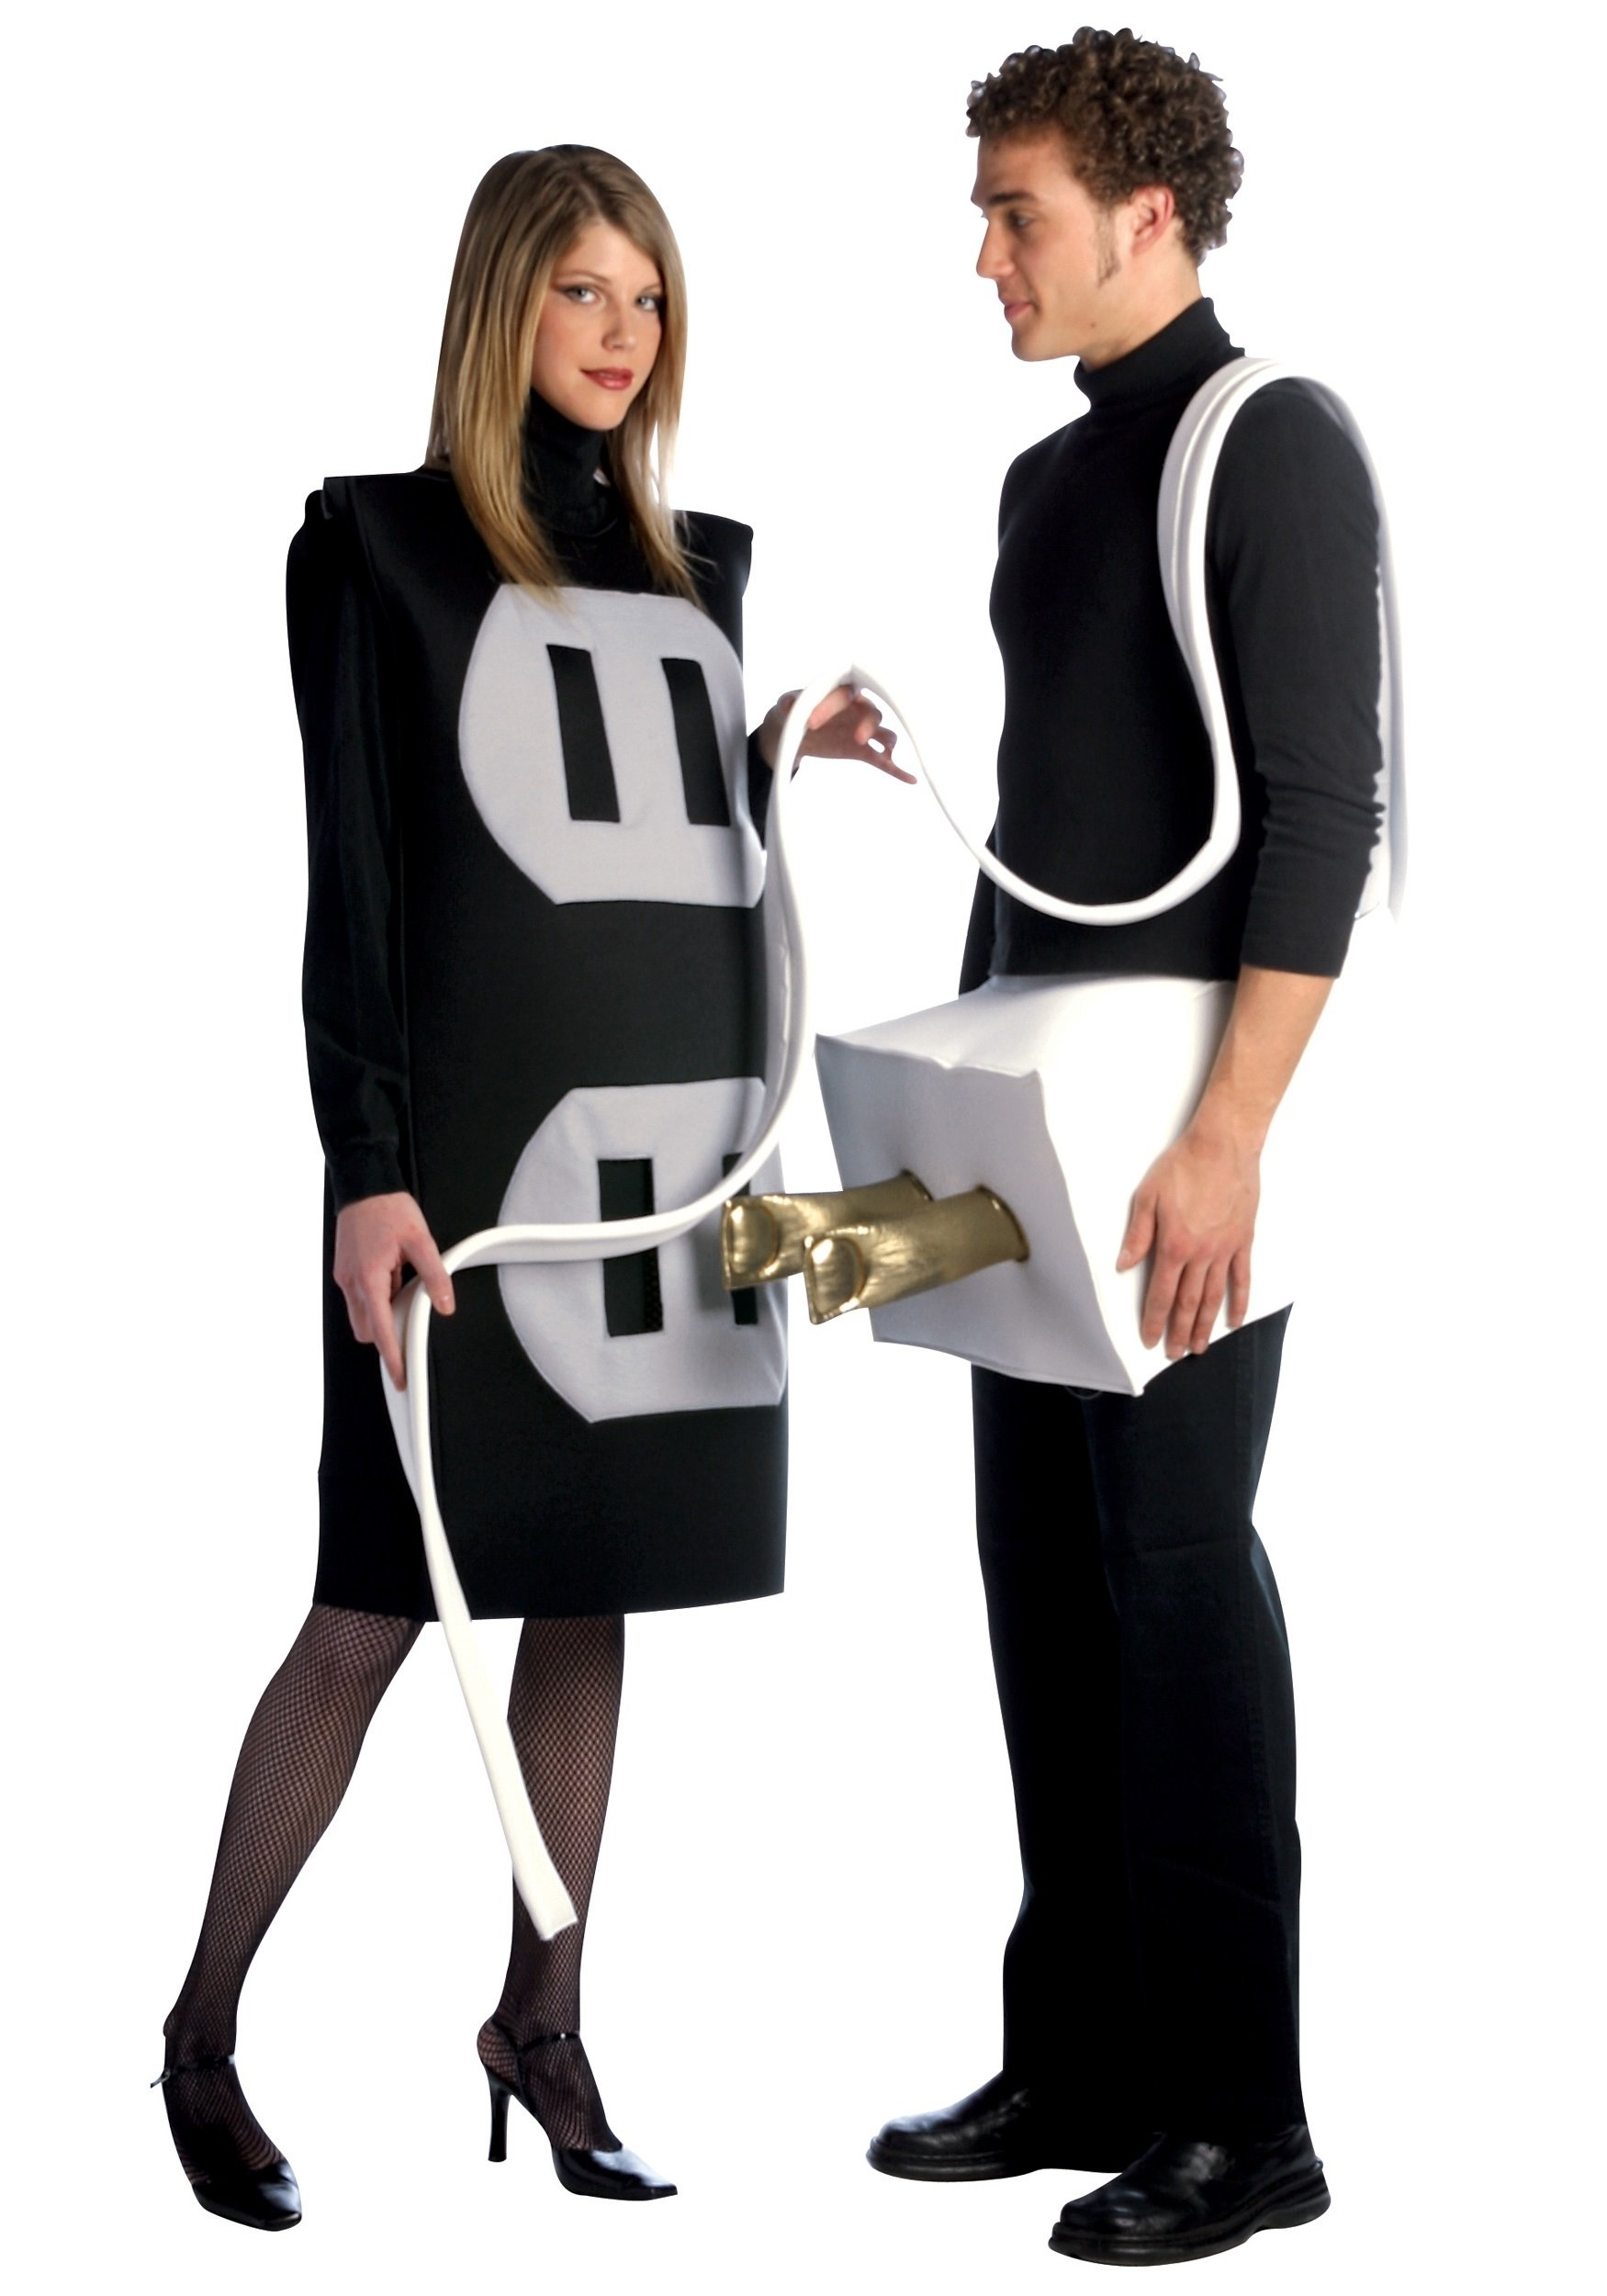 10 Stylish Halloween Costume Ideas For Couples plug and socket costume funny couples costume ideas 6 2020